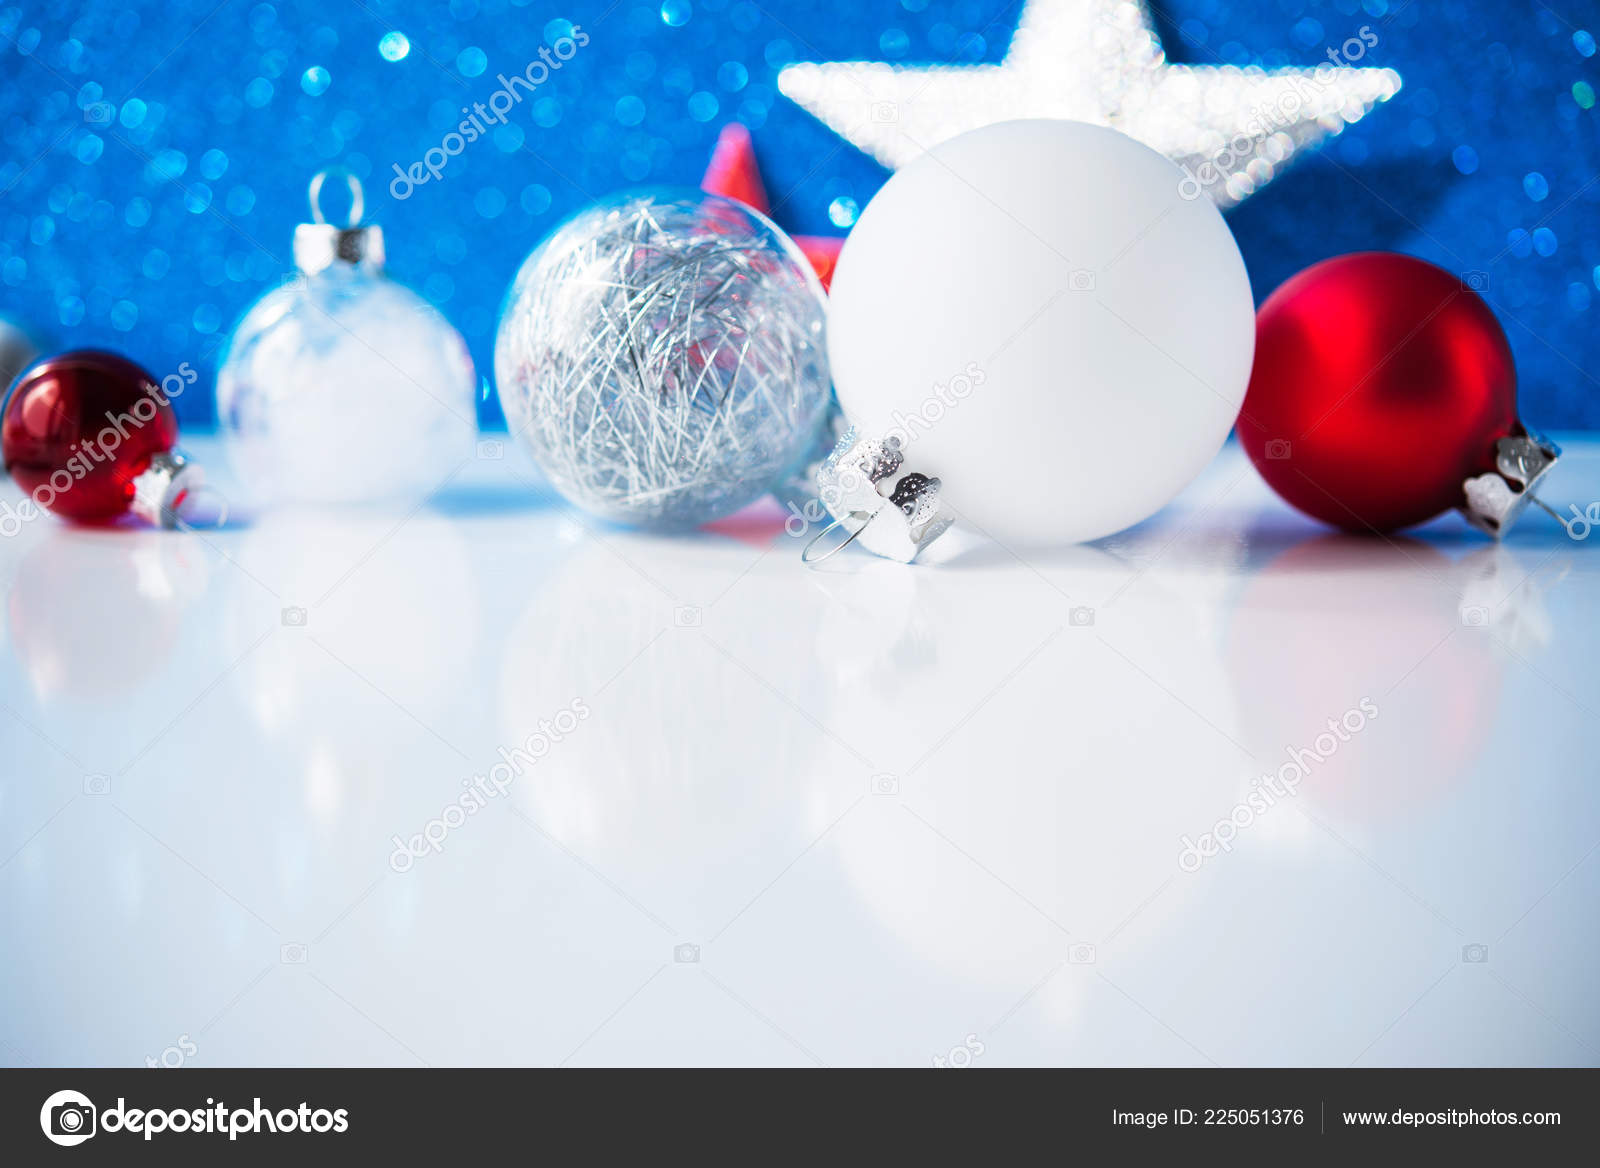 White Red Silver Christmas Decorations Blue Background — Stock Photo